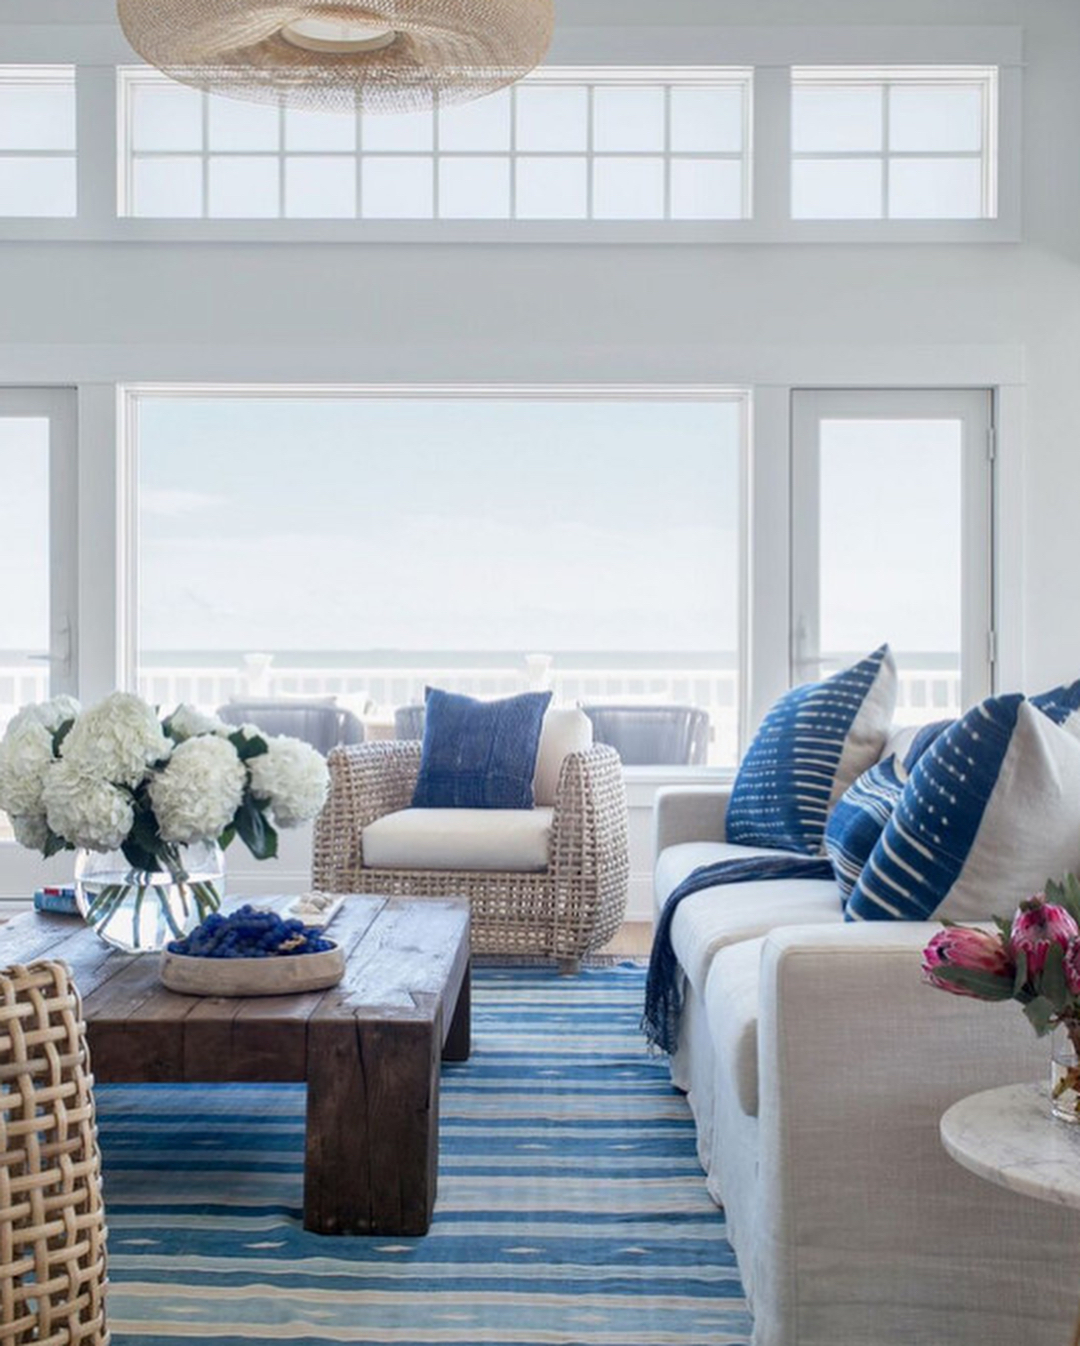 Get the look of this beachy blue and white livinghellip